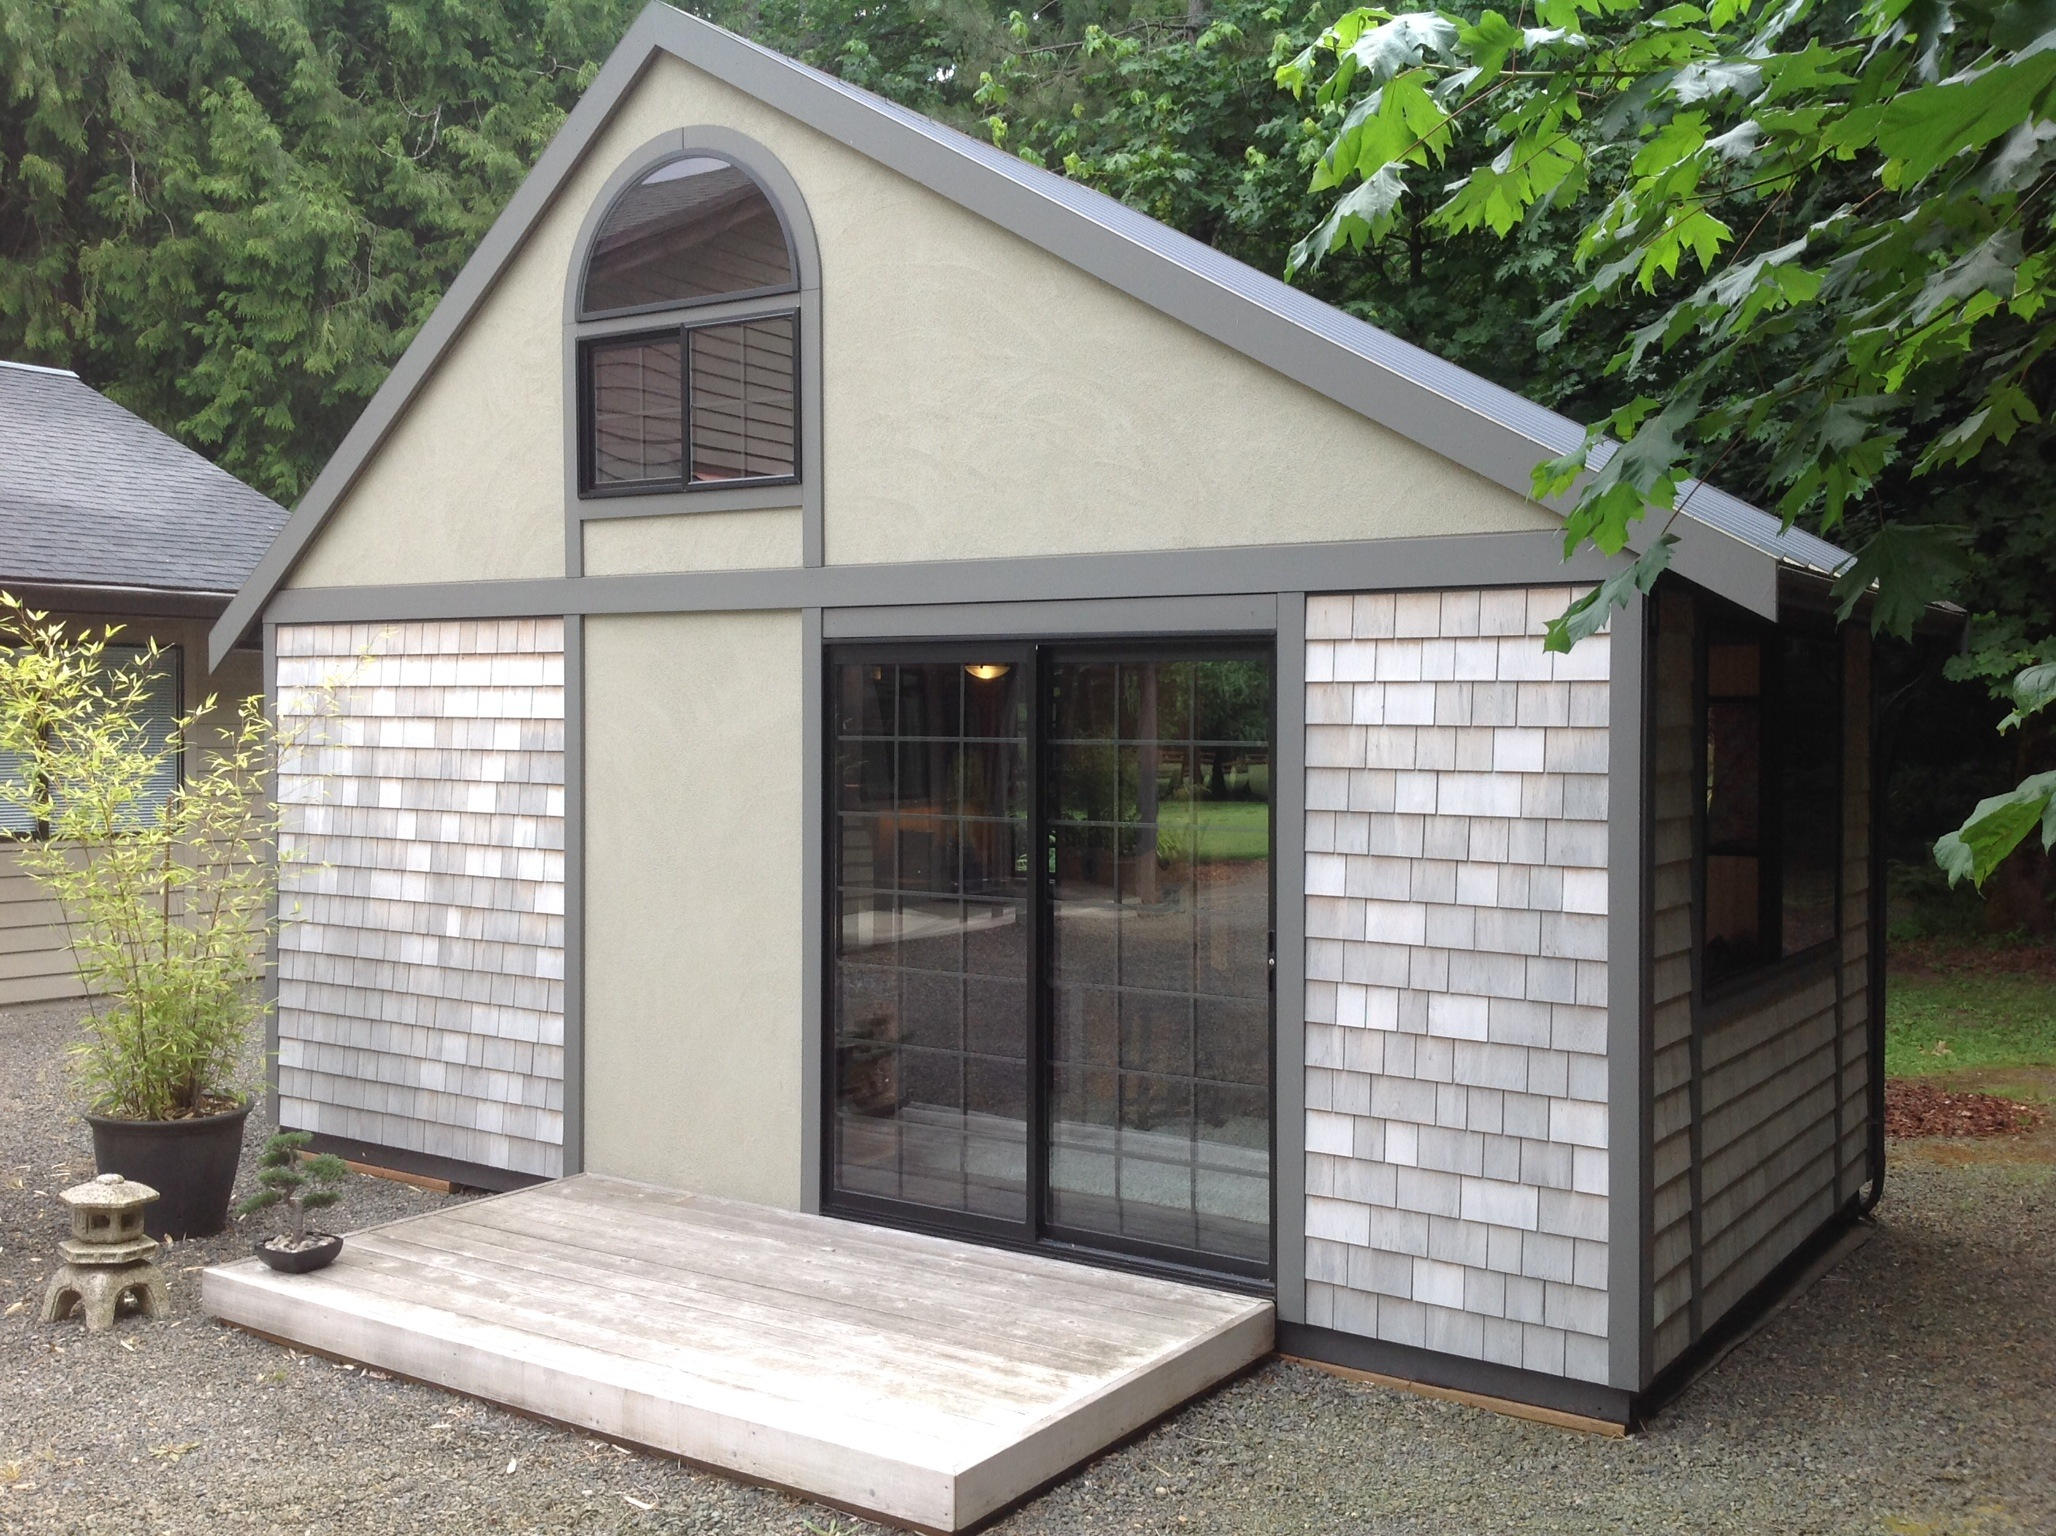 A Tiny House with a Folding Roof by Chris Heininge